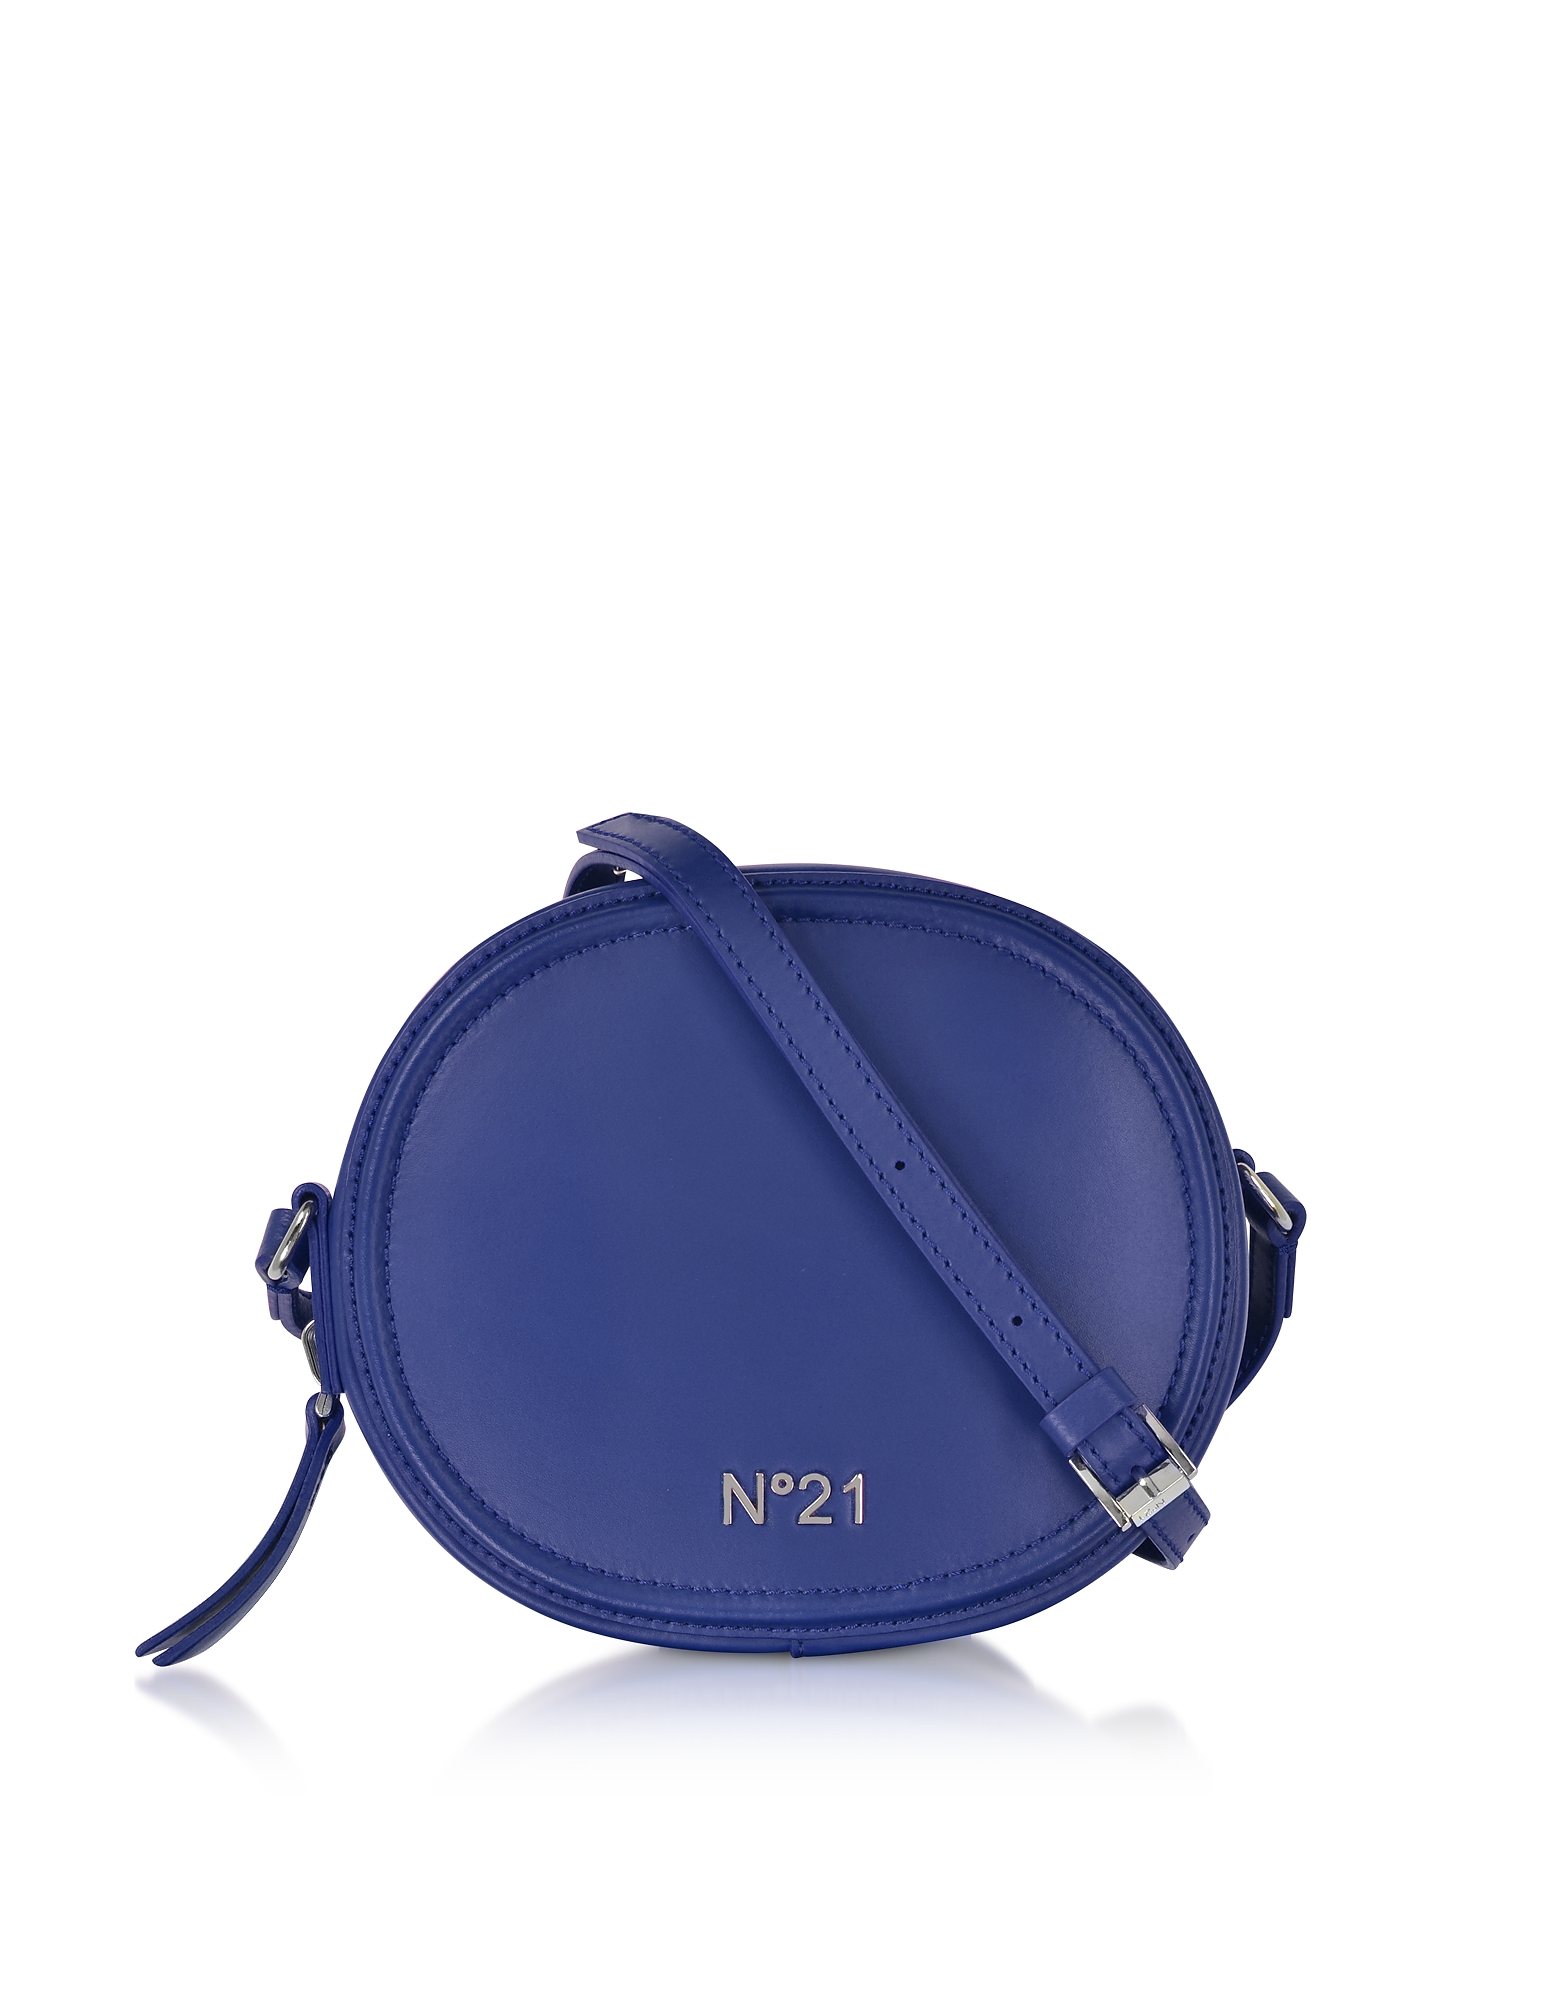 N°21 Handbags, Bluette Leather Tambourine Crossbody Bag w/Metallic Embossed Logo